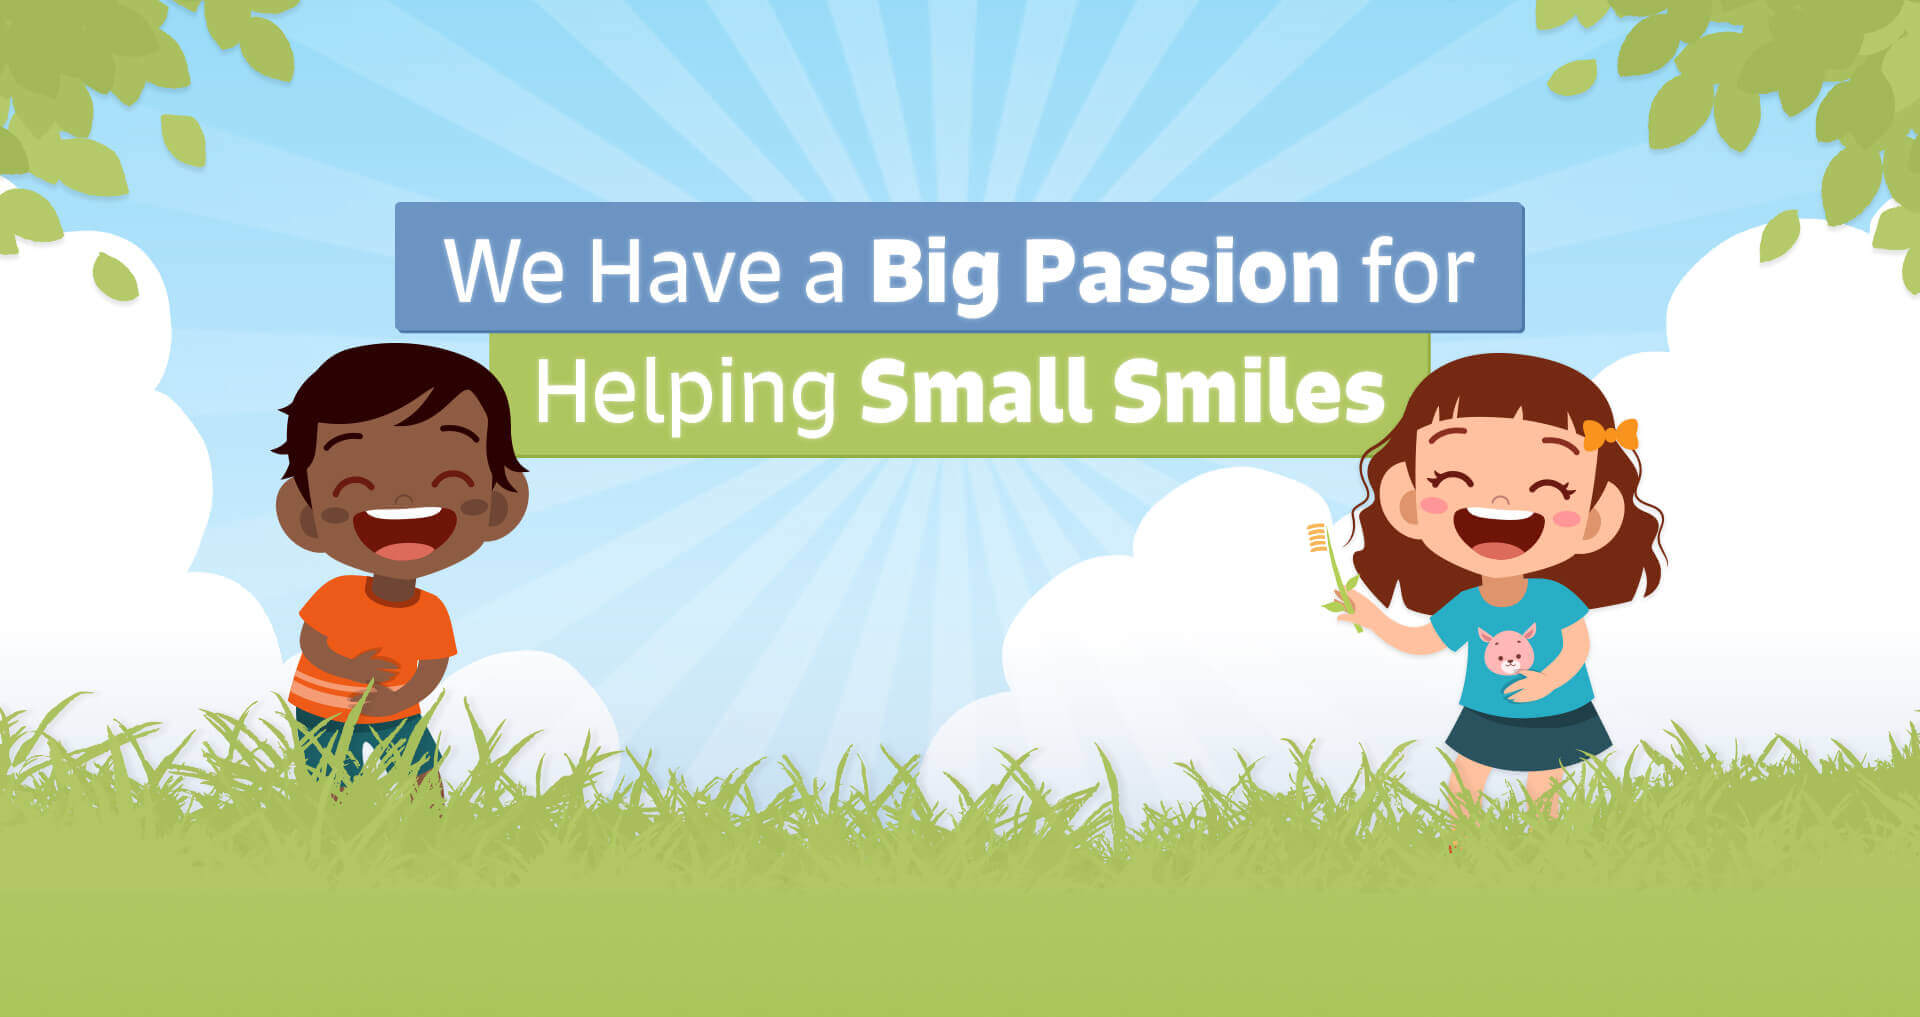 We have a Big Passion for helping Small Smiles